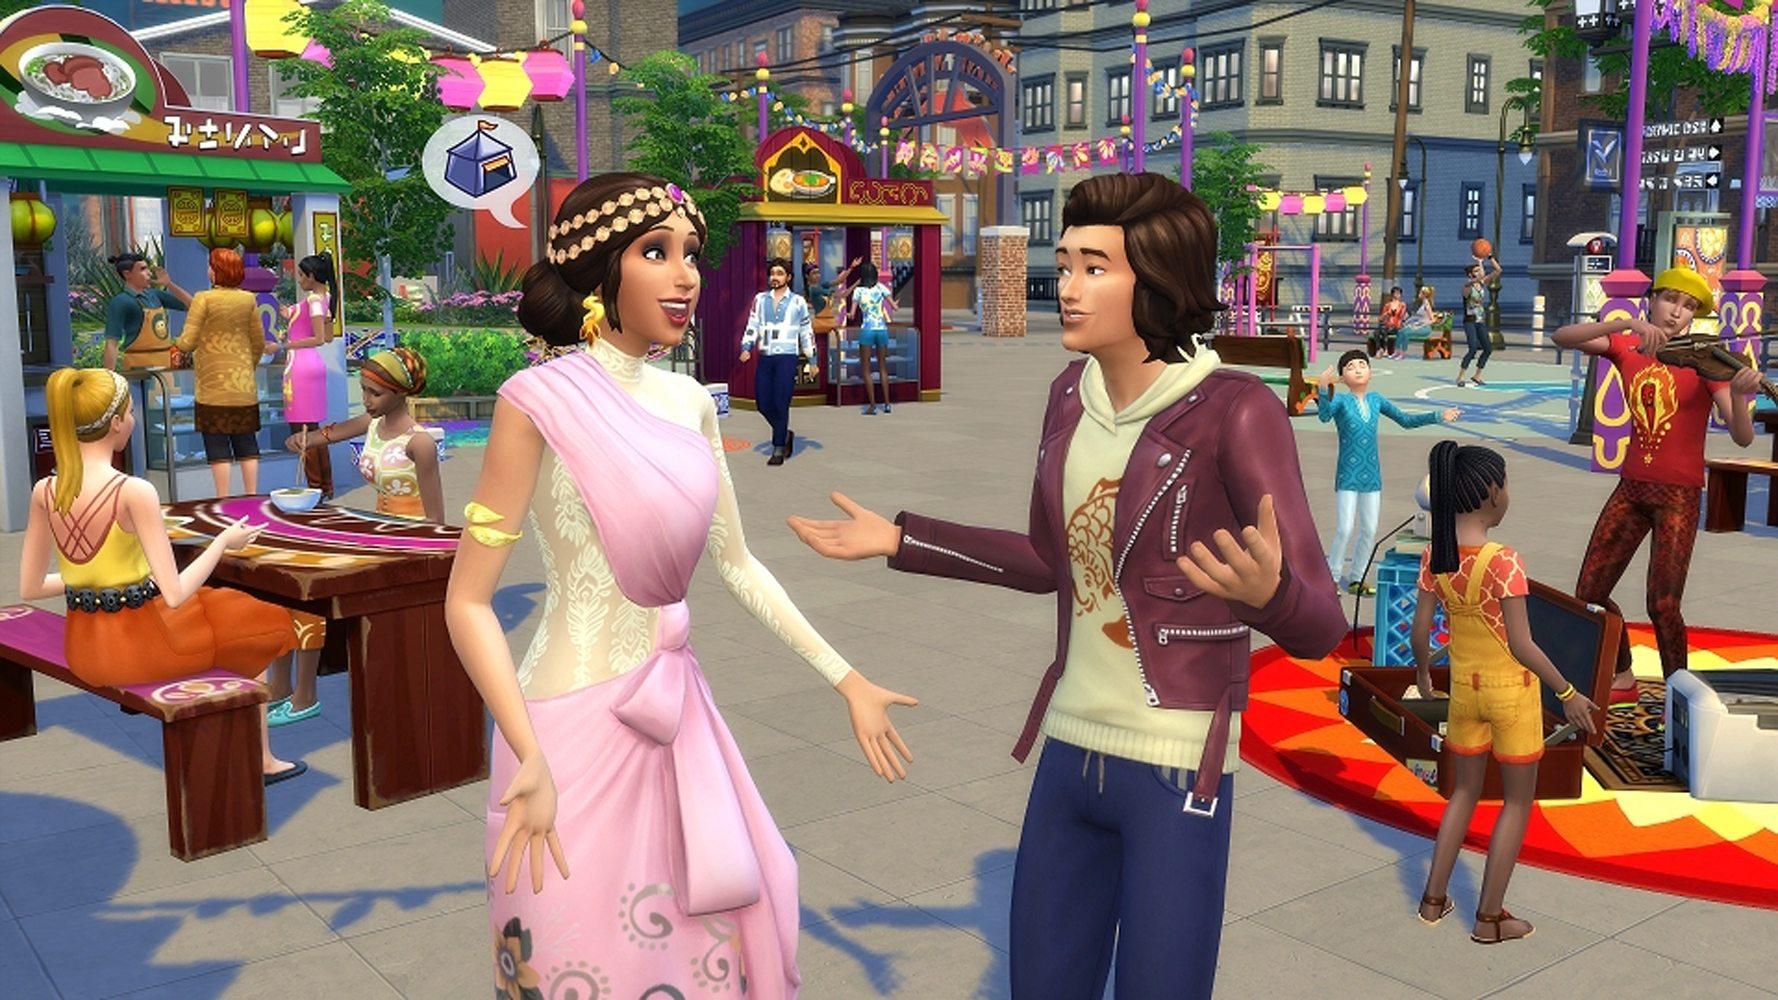 The Sims 4 New City Living Expansion Pack Announced by EA